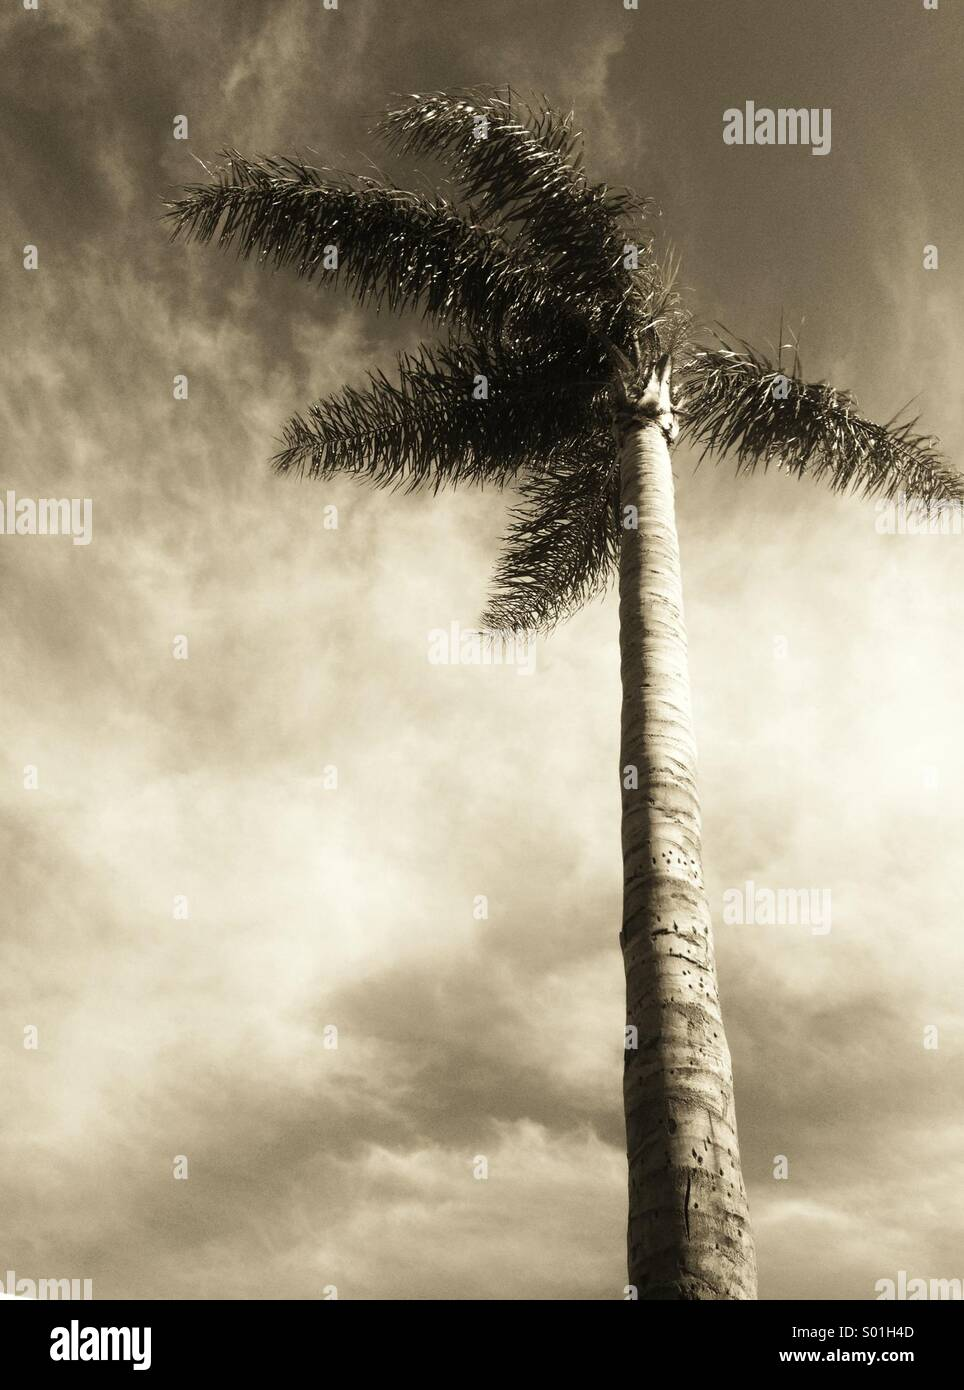 Wind in the palm tree - Stock Image